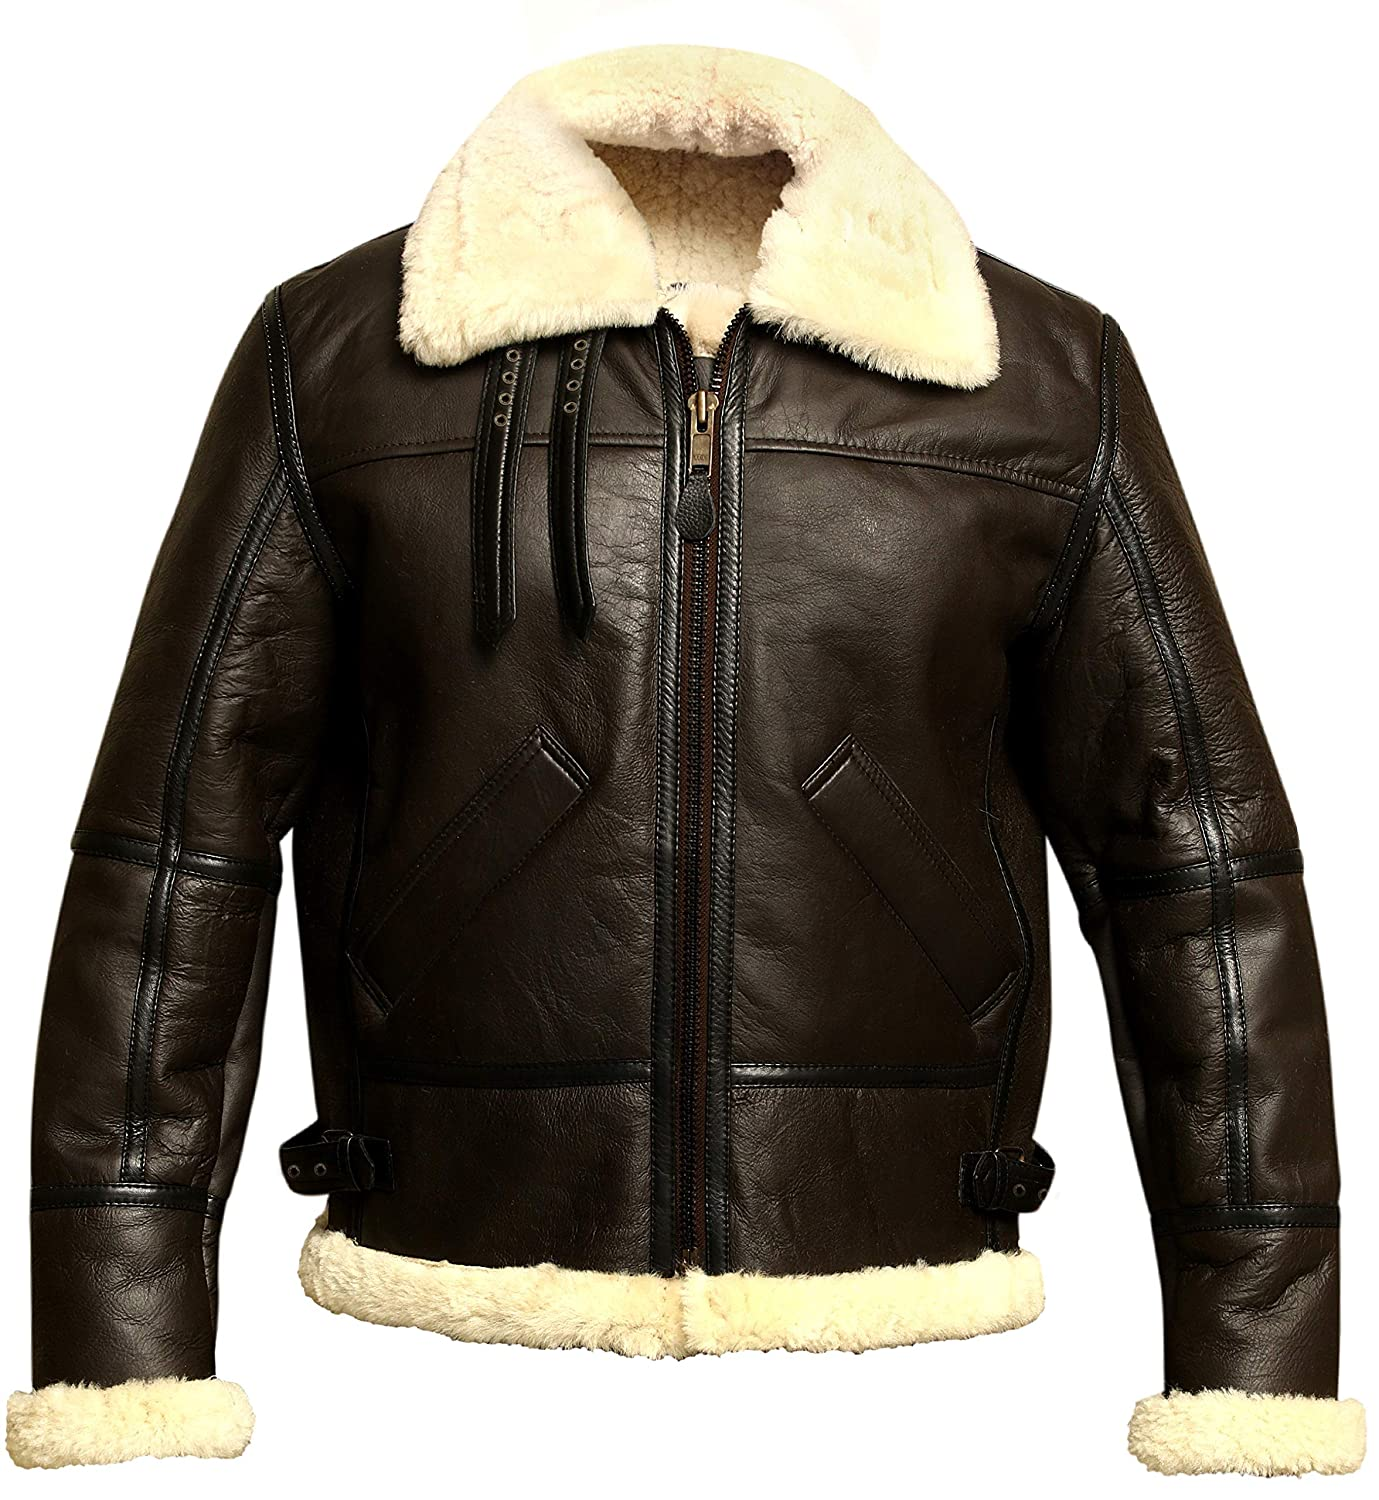 a1a8c2d22 Men B3 Bomber Aviator Shearling Sheepskin Leather Winter Jacket at Amazon  Men's Clothing store: